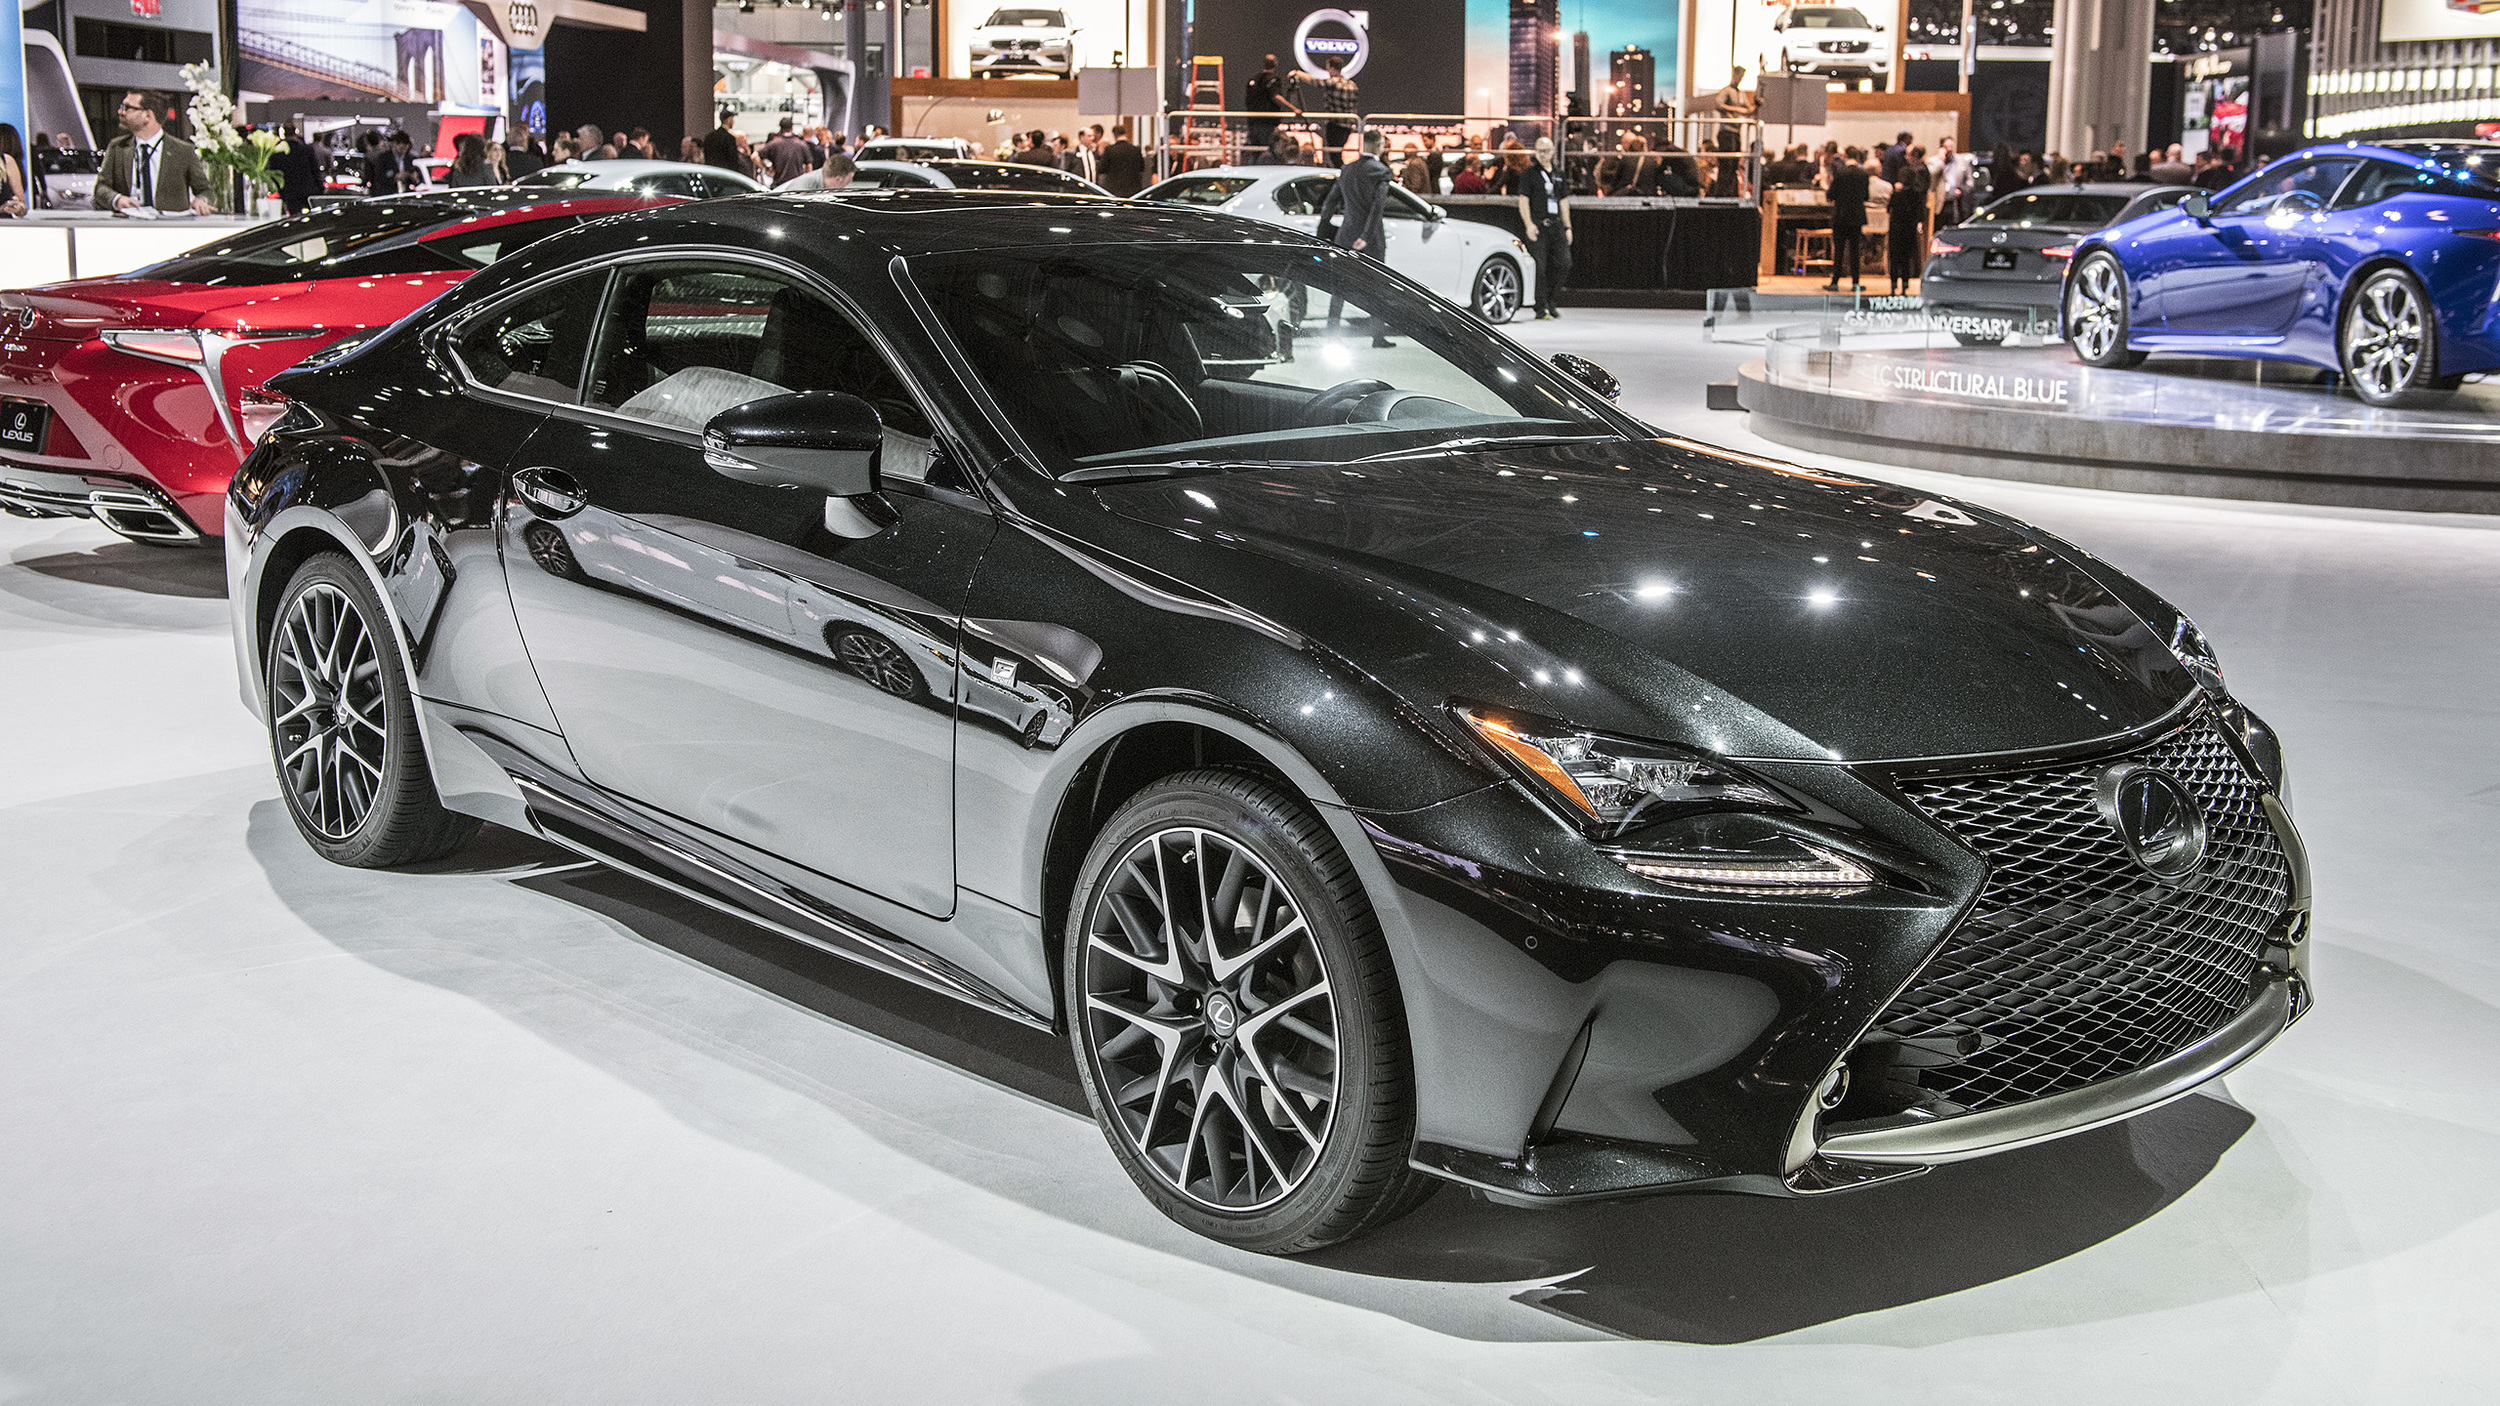 Black Book Car Values >> Lexus RC coupe Black Line special edition limited to just 650 units | Autoblog